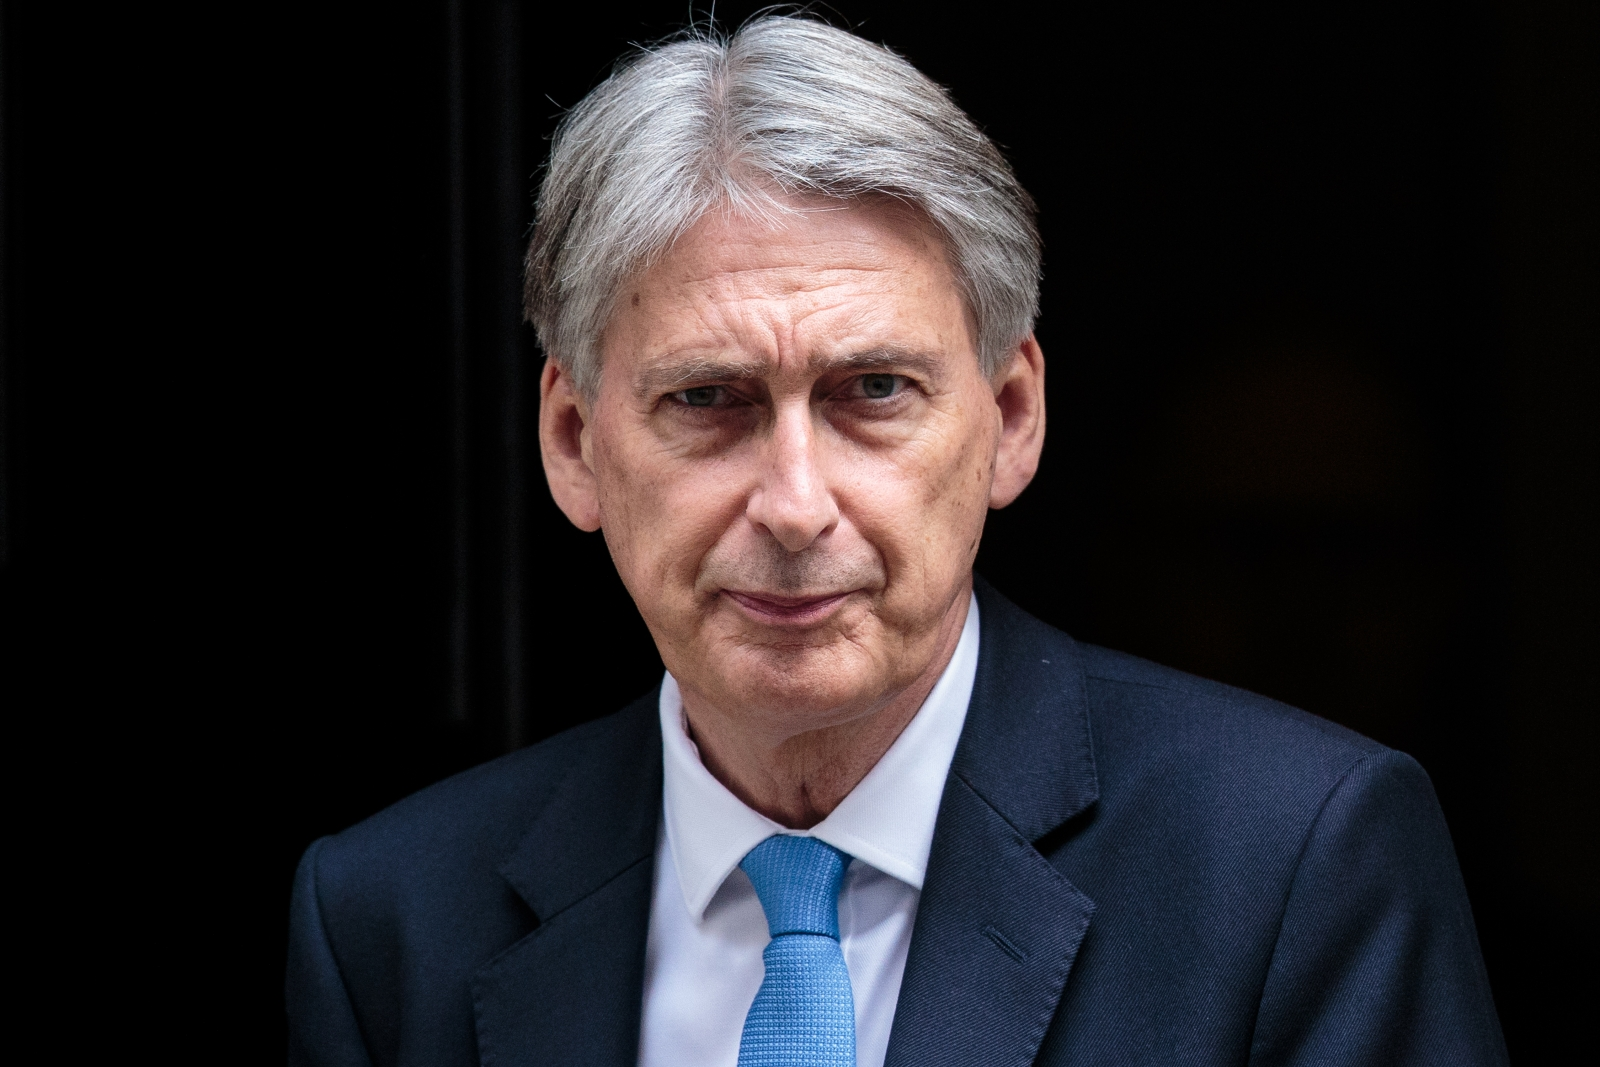 Philip Hammond Should Be Sacked, Says Former Tory Chancellor Nigel Lawson